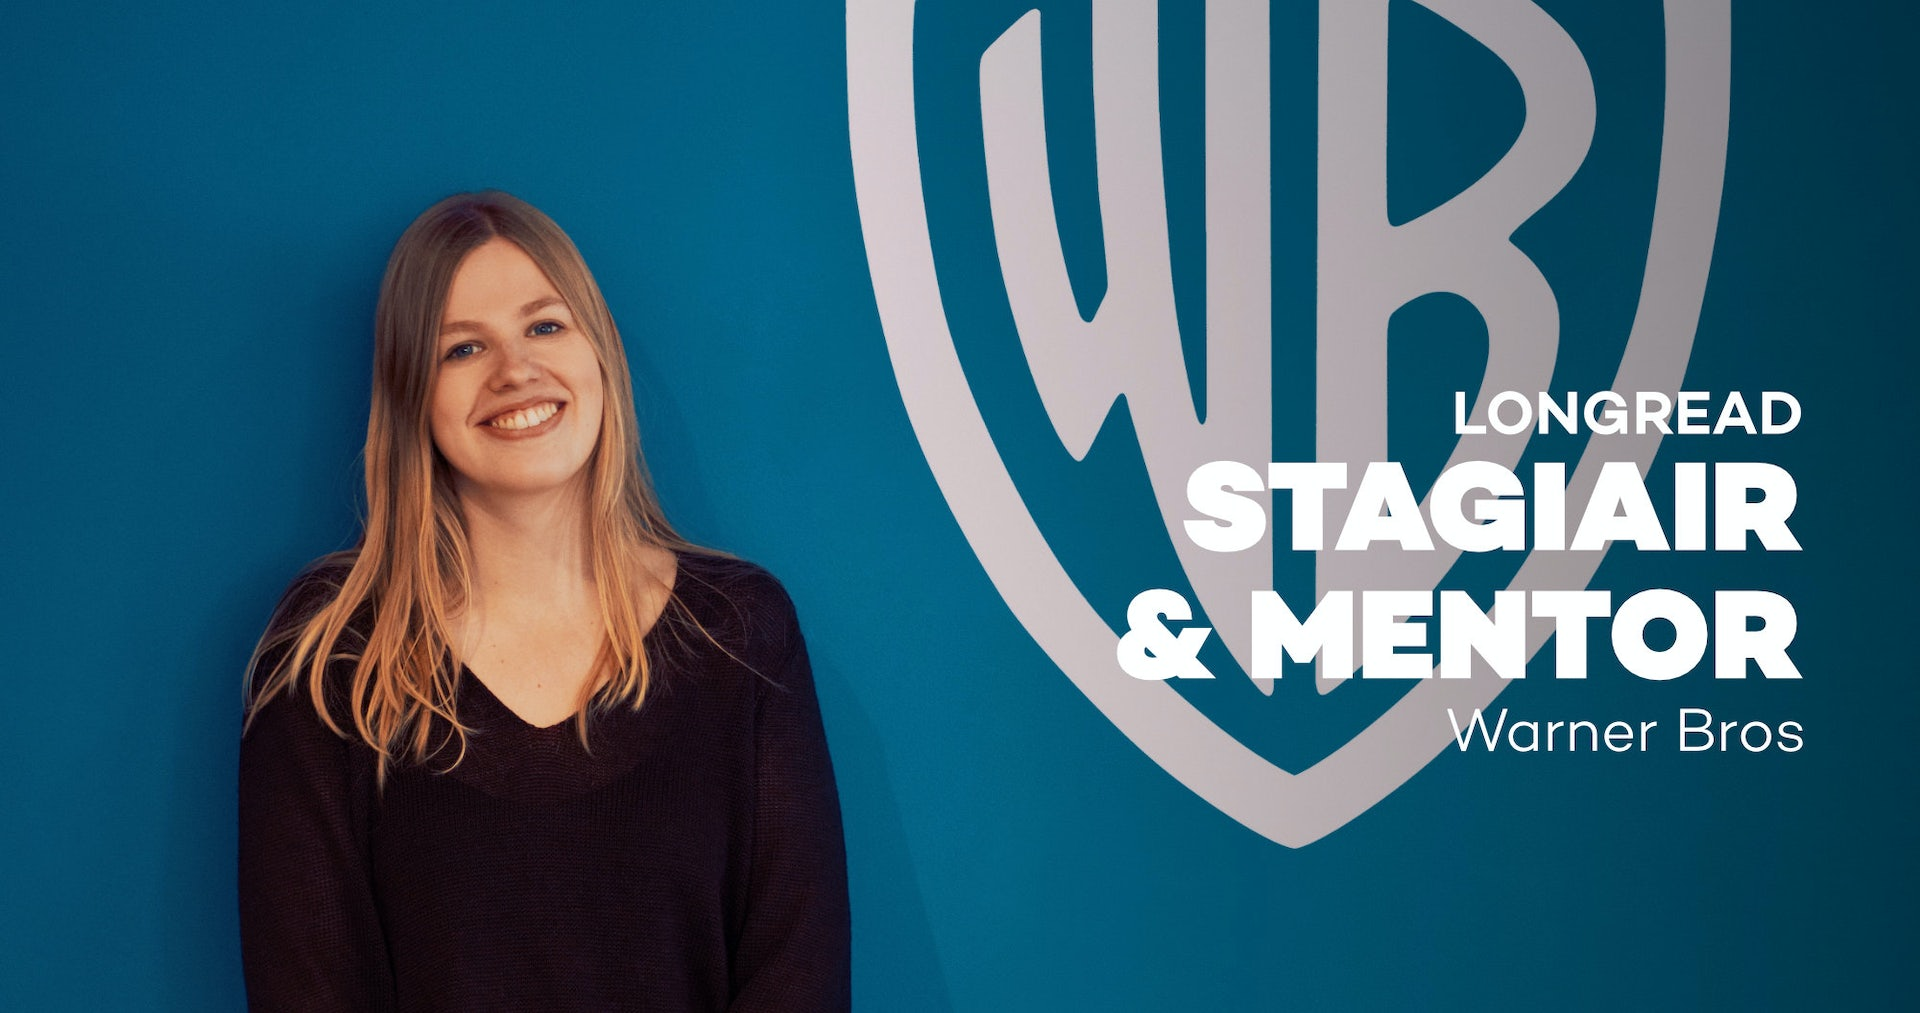 Stagiair & mentor - Warner Bros